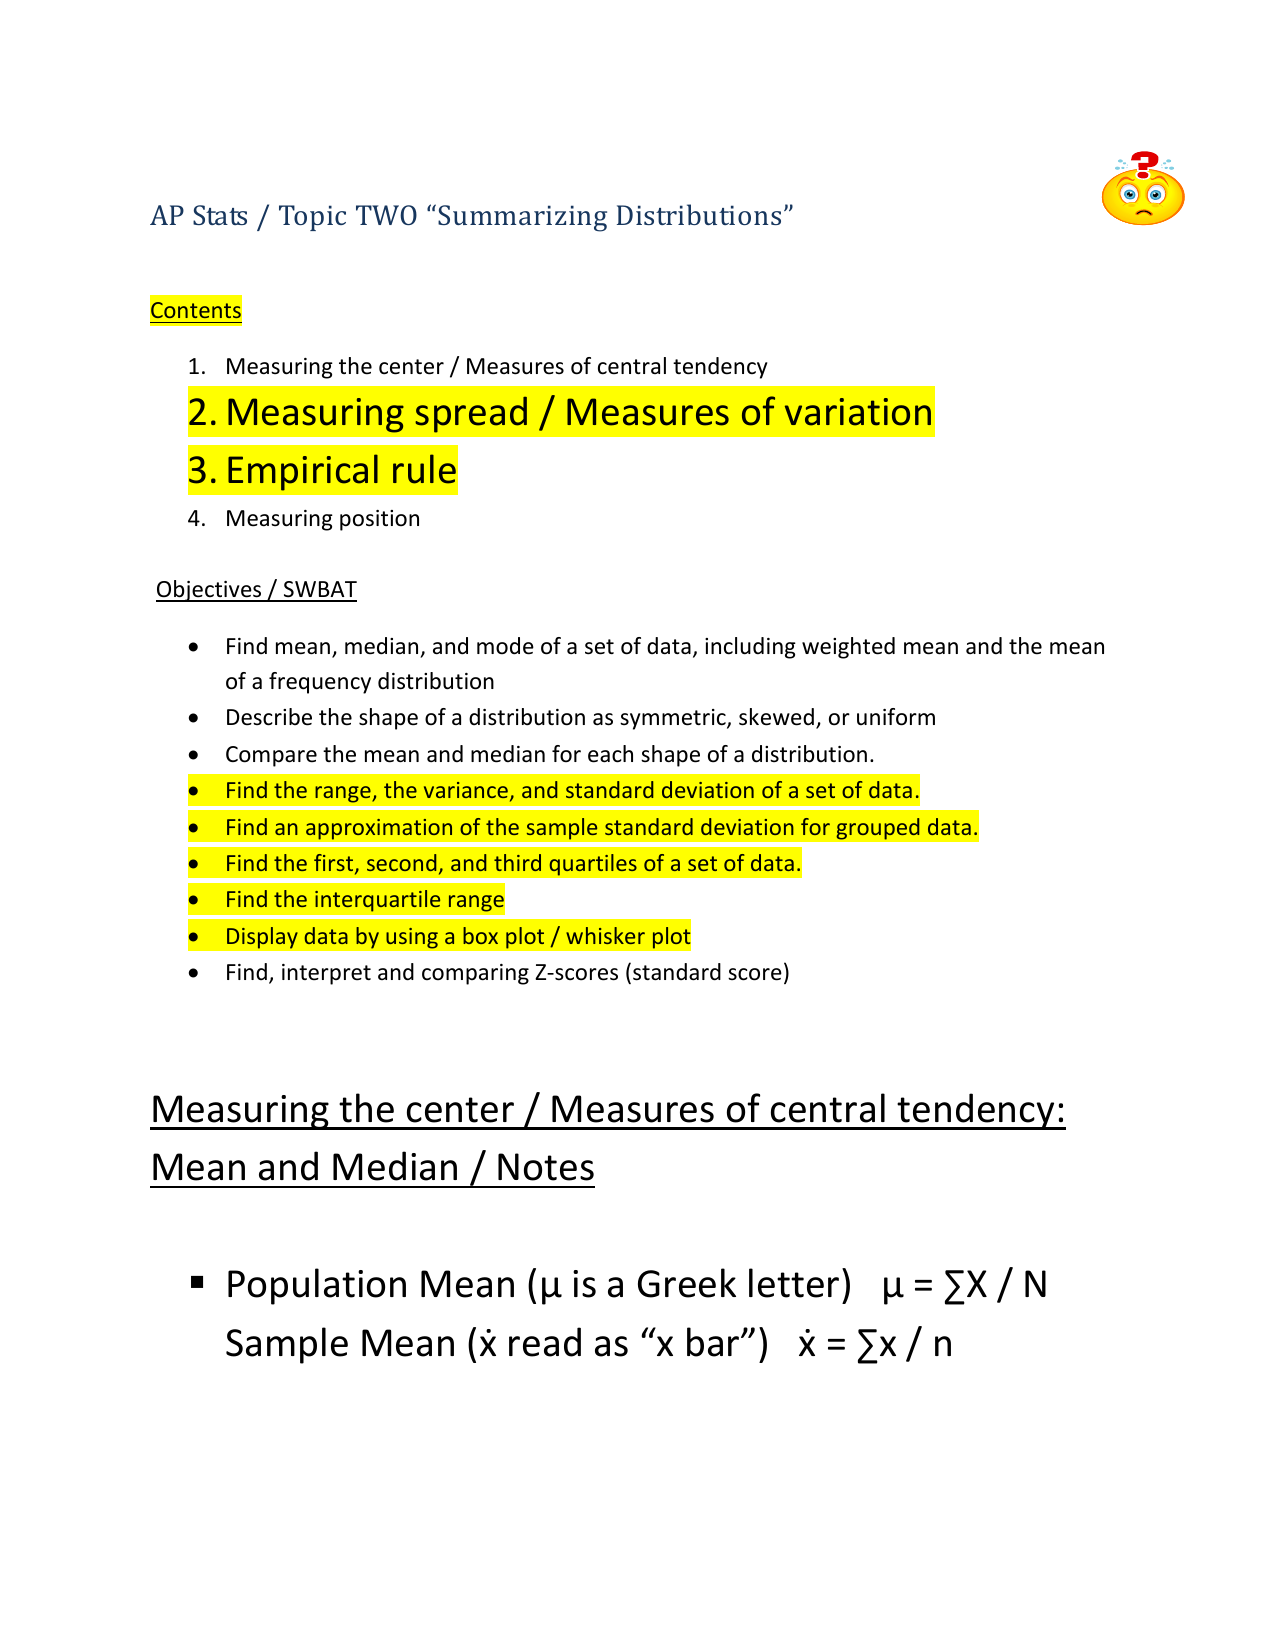 ap stats topic two summarizing distributions contents